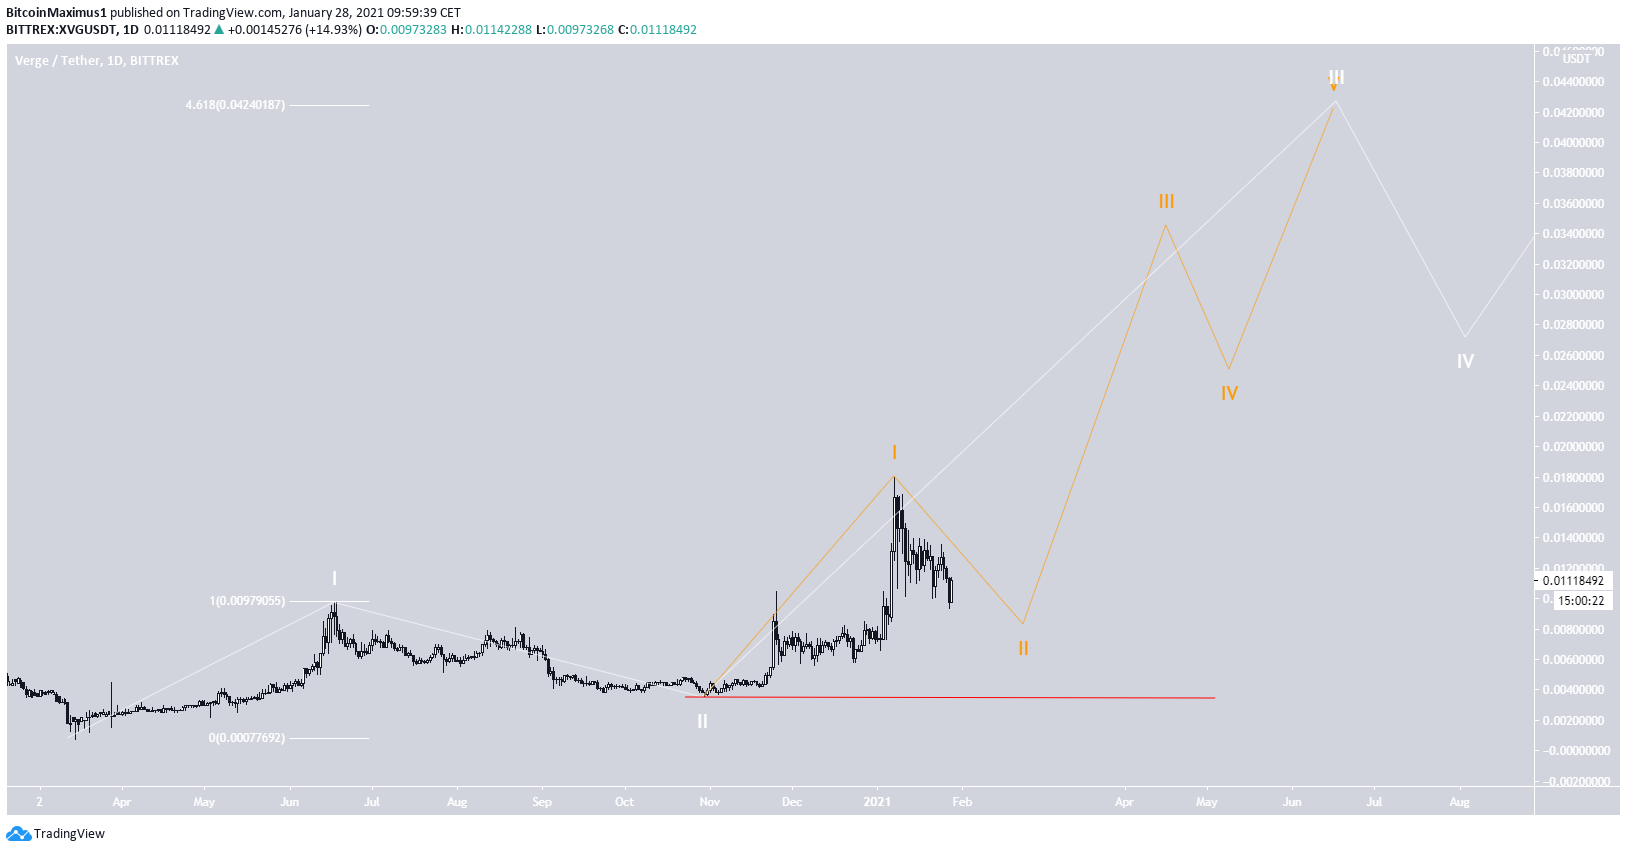 XVG Wave Count